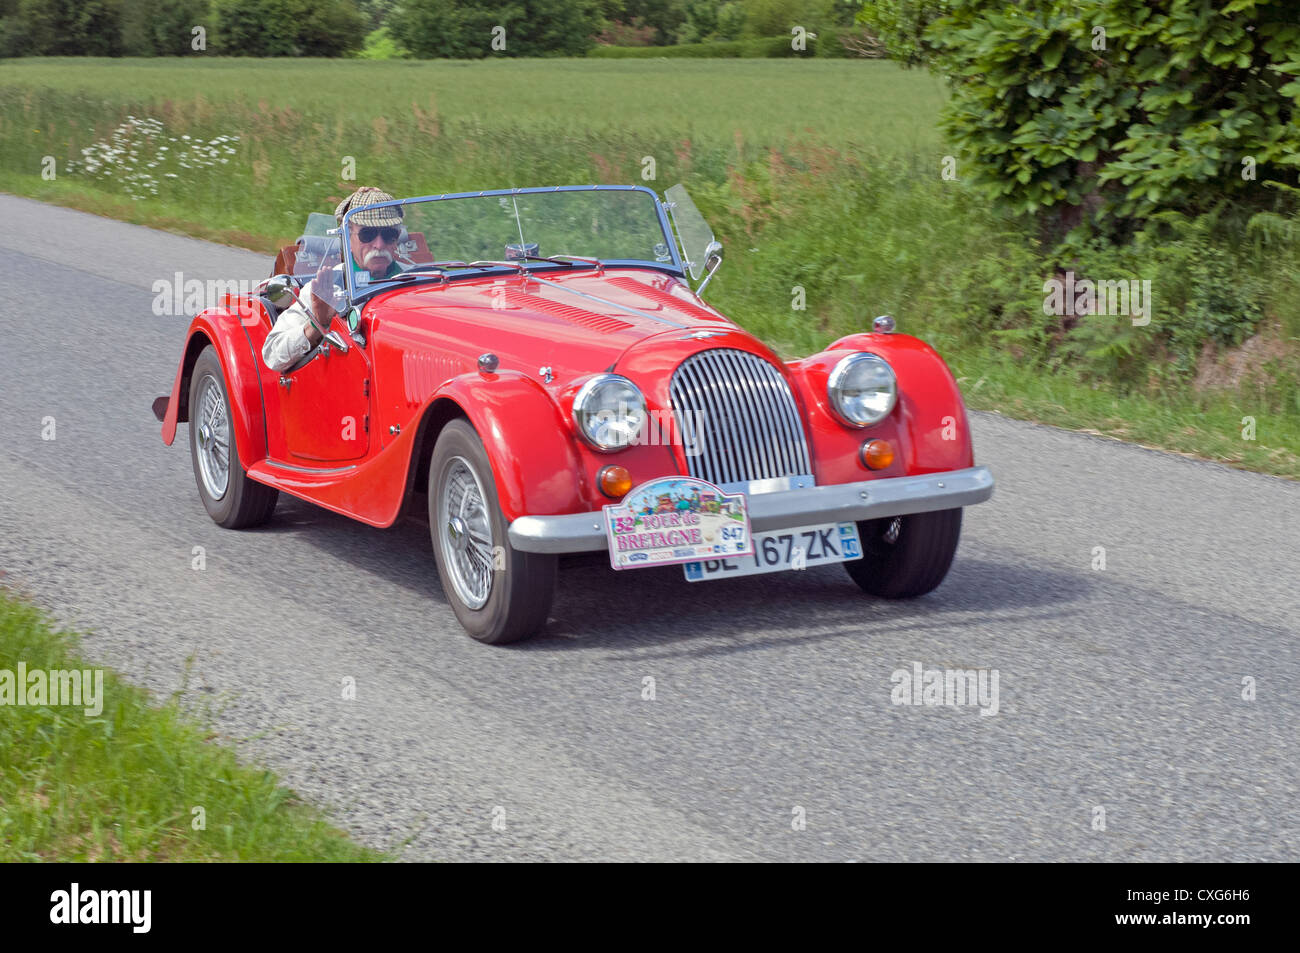 Tour Of 1981 Stock Photos Images Alamy Motorheads Performance Classic Car News Wiring Nightmares Can Be Morgan 4 Cabriolet In The De Bretagne France 2012